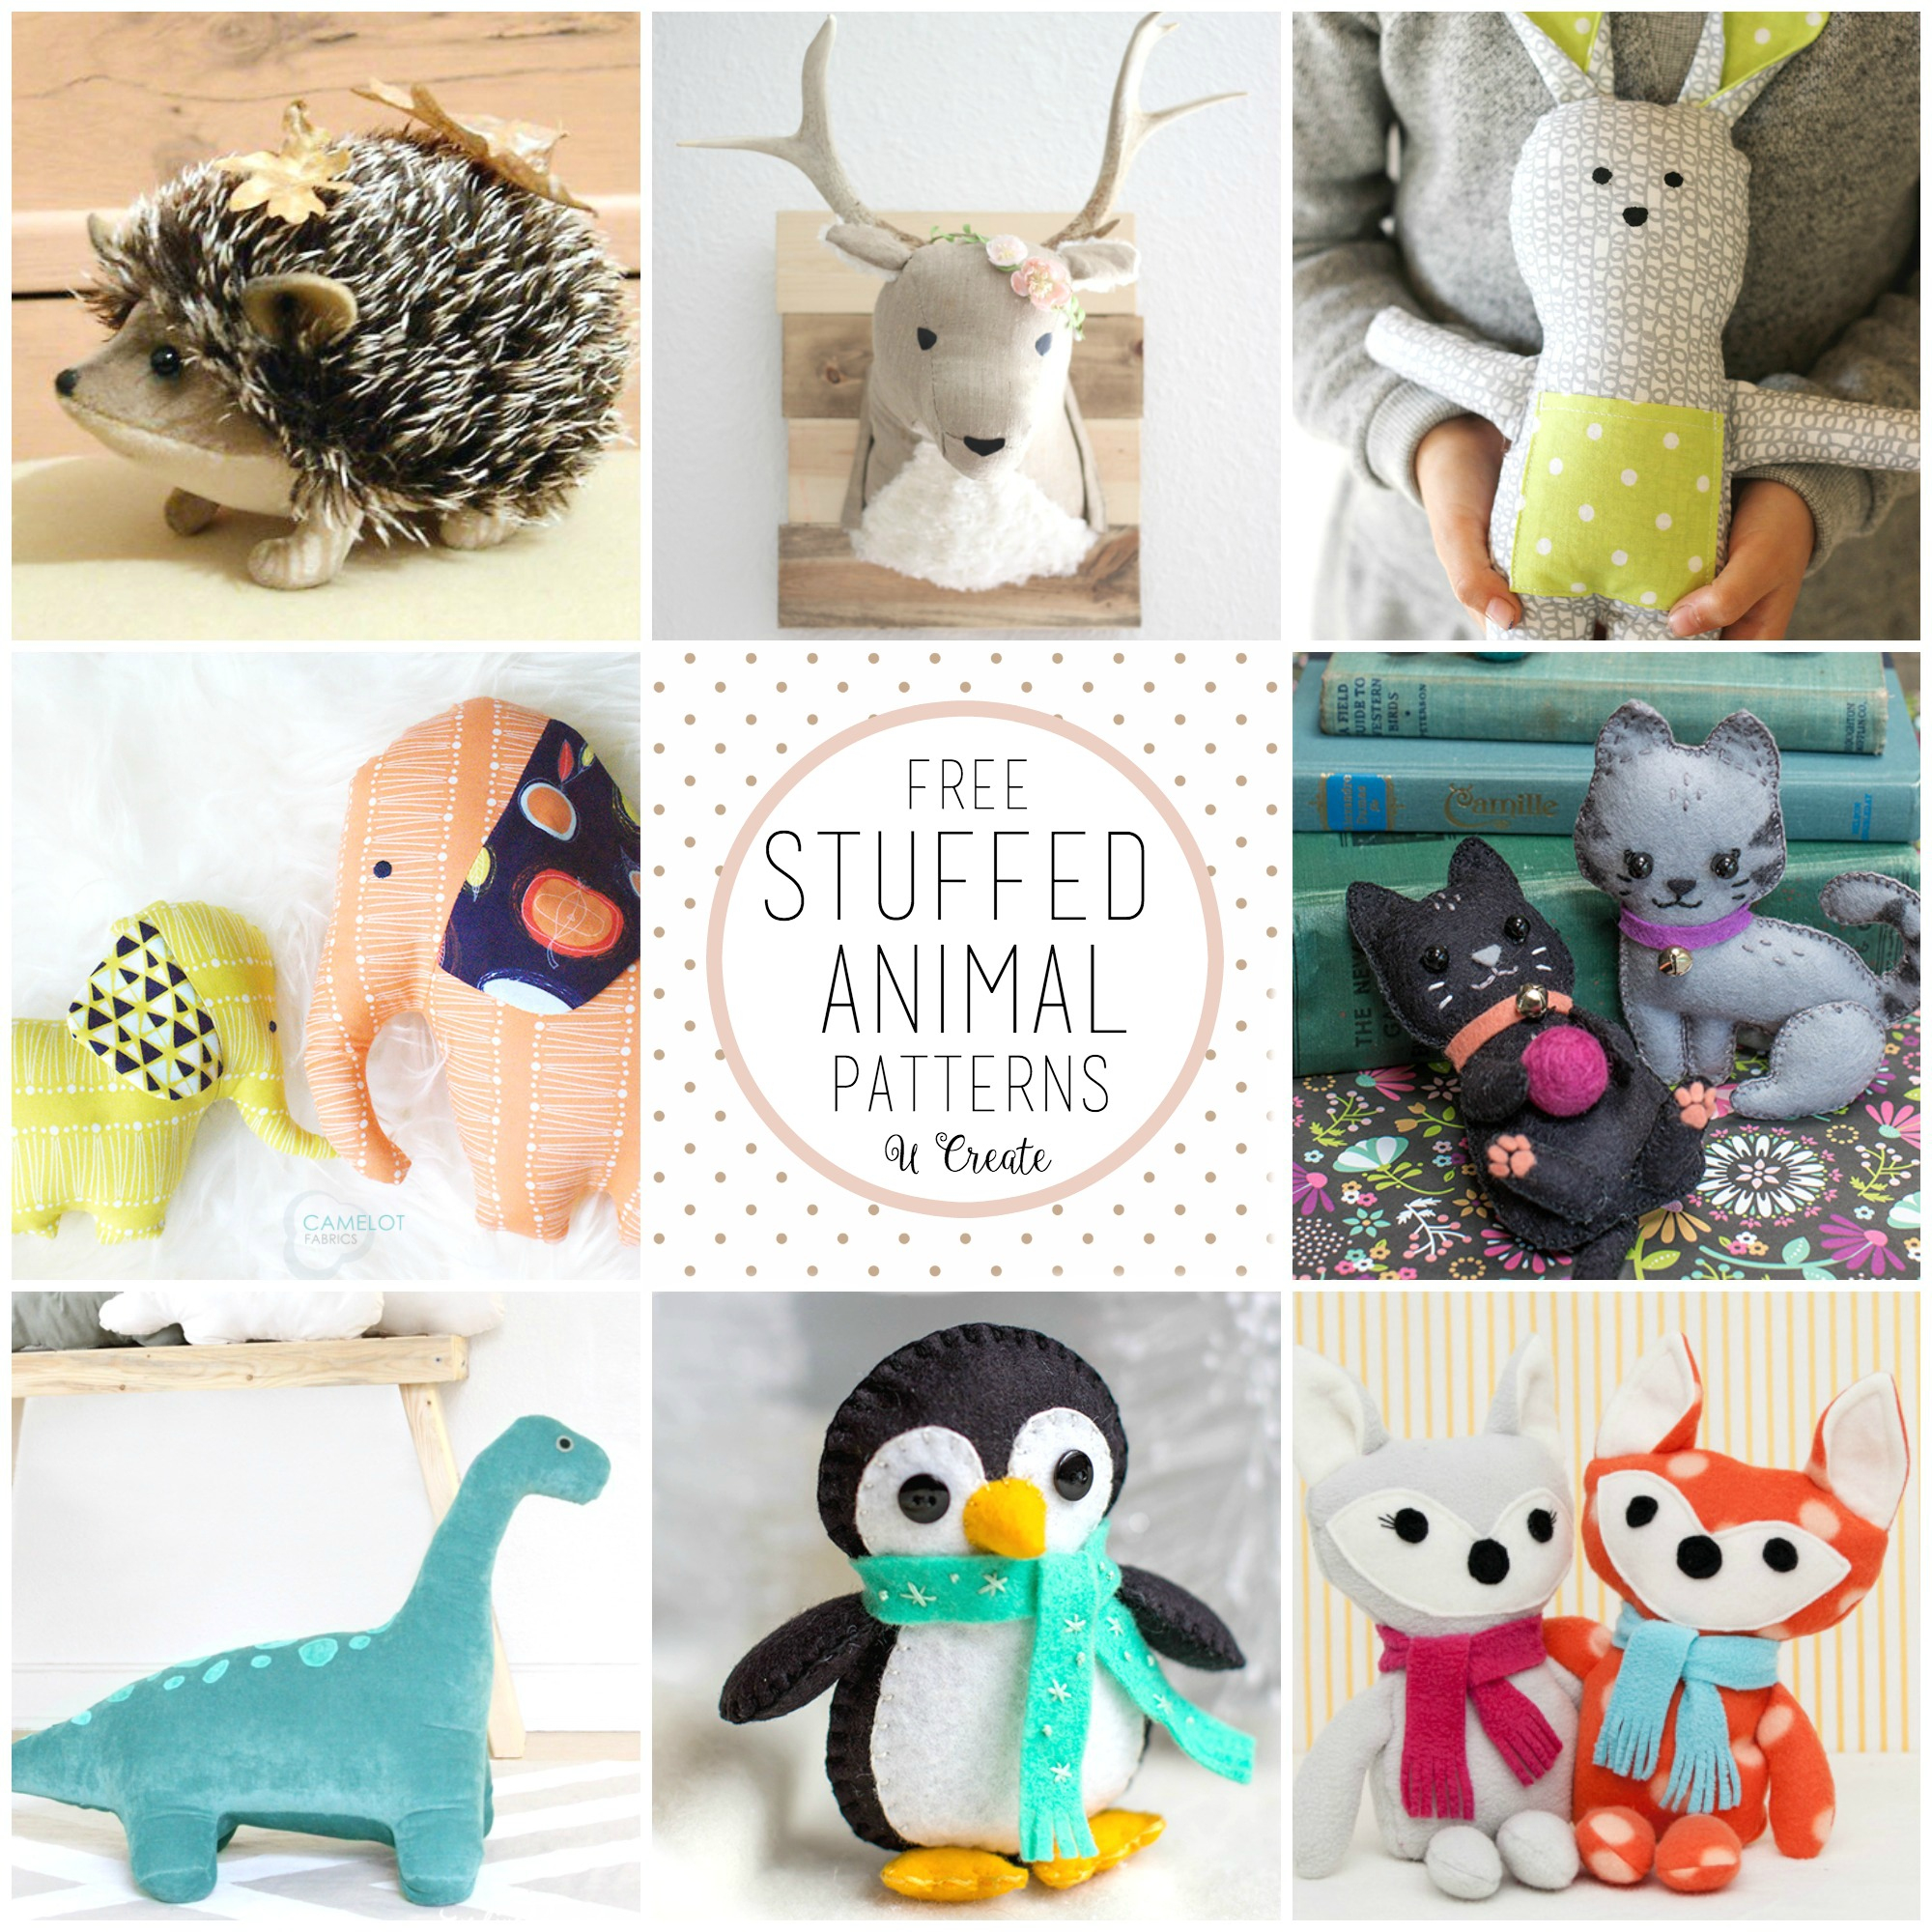 Free Stuffed Animal Patterns - The Cutest! - U Create - Free Printable Stuffed Animal Patterns